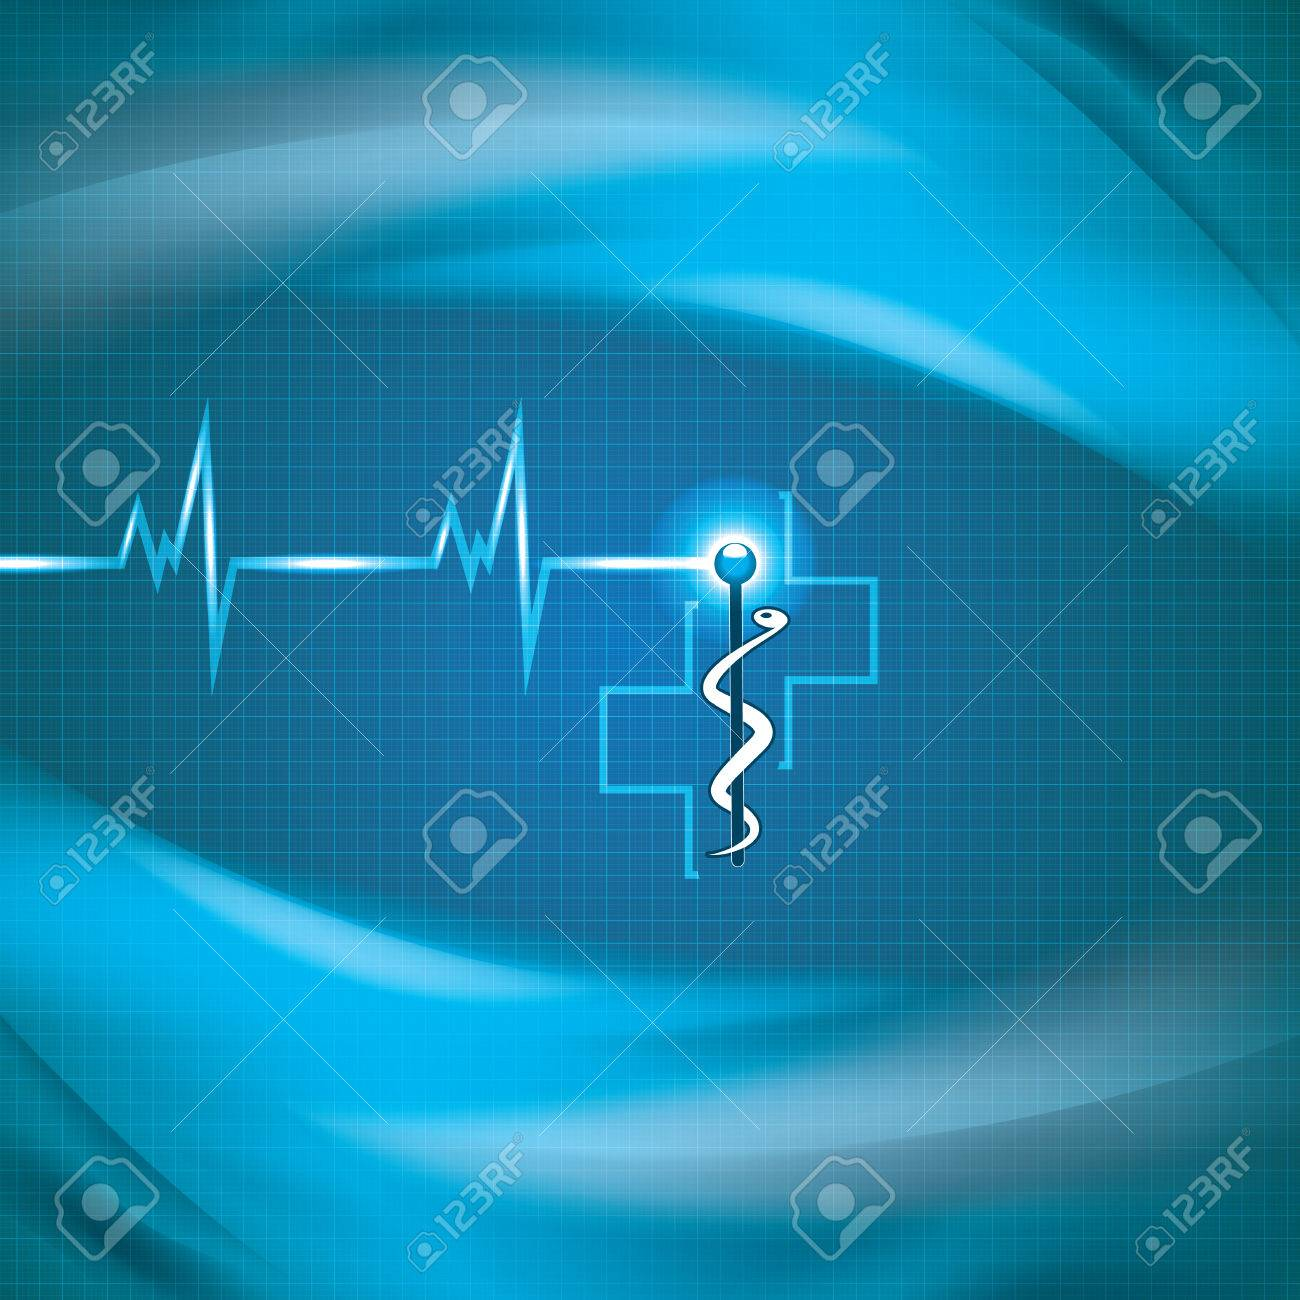 Abstract medical cardiology ekg background Stock Vector - 24873101